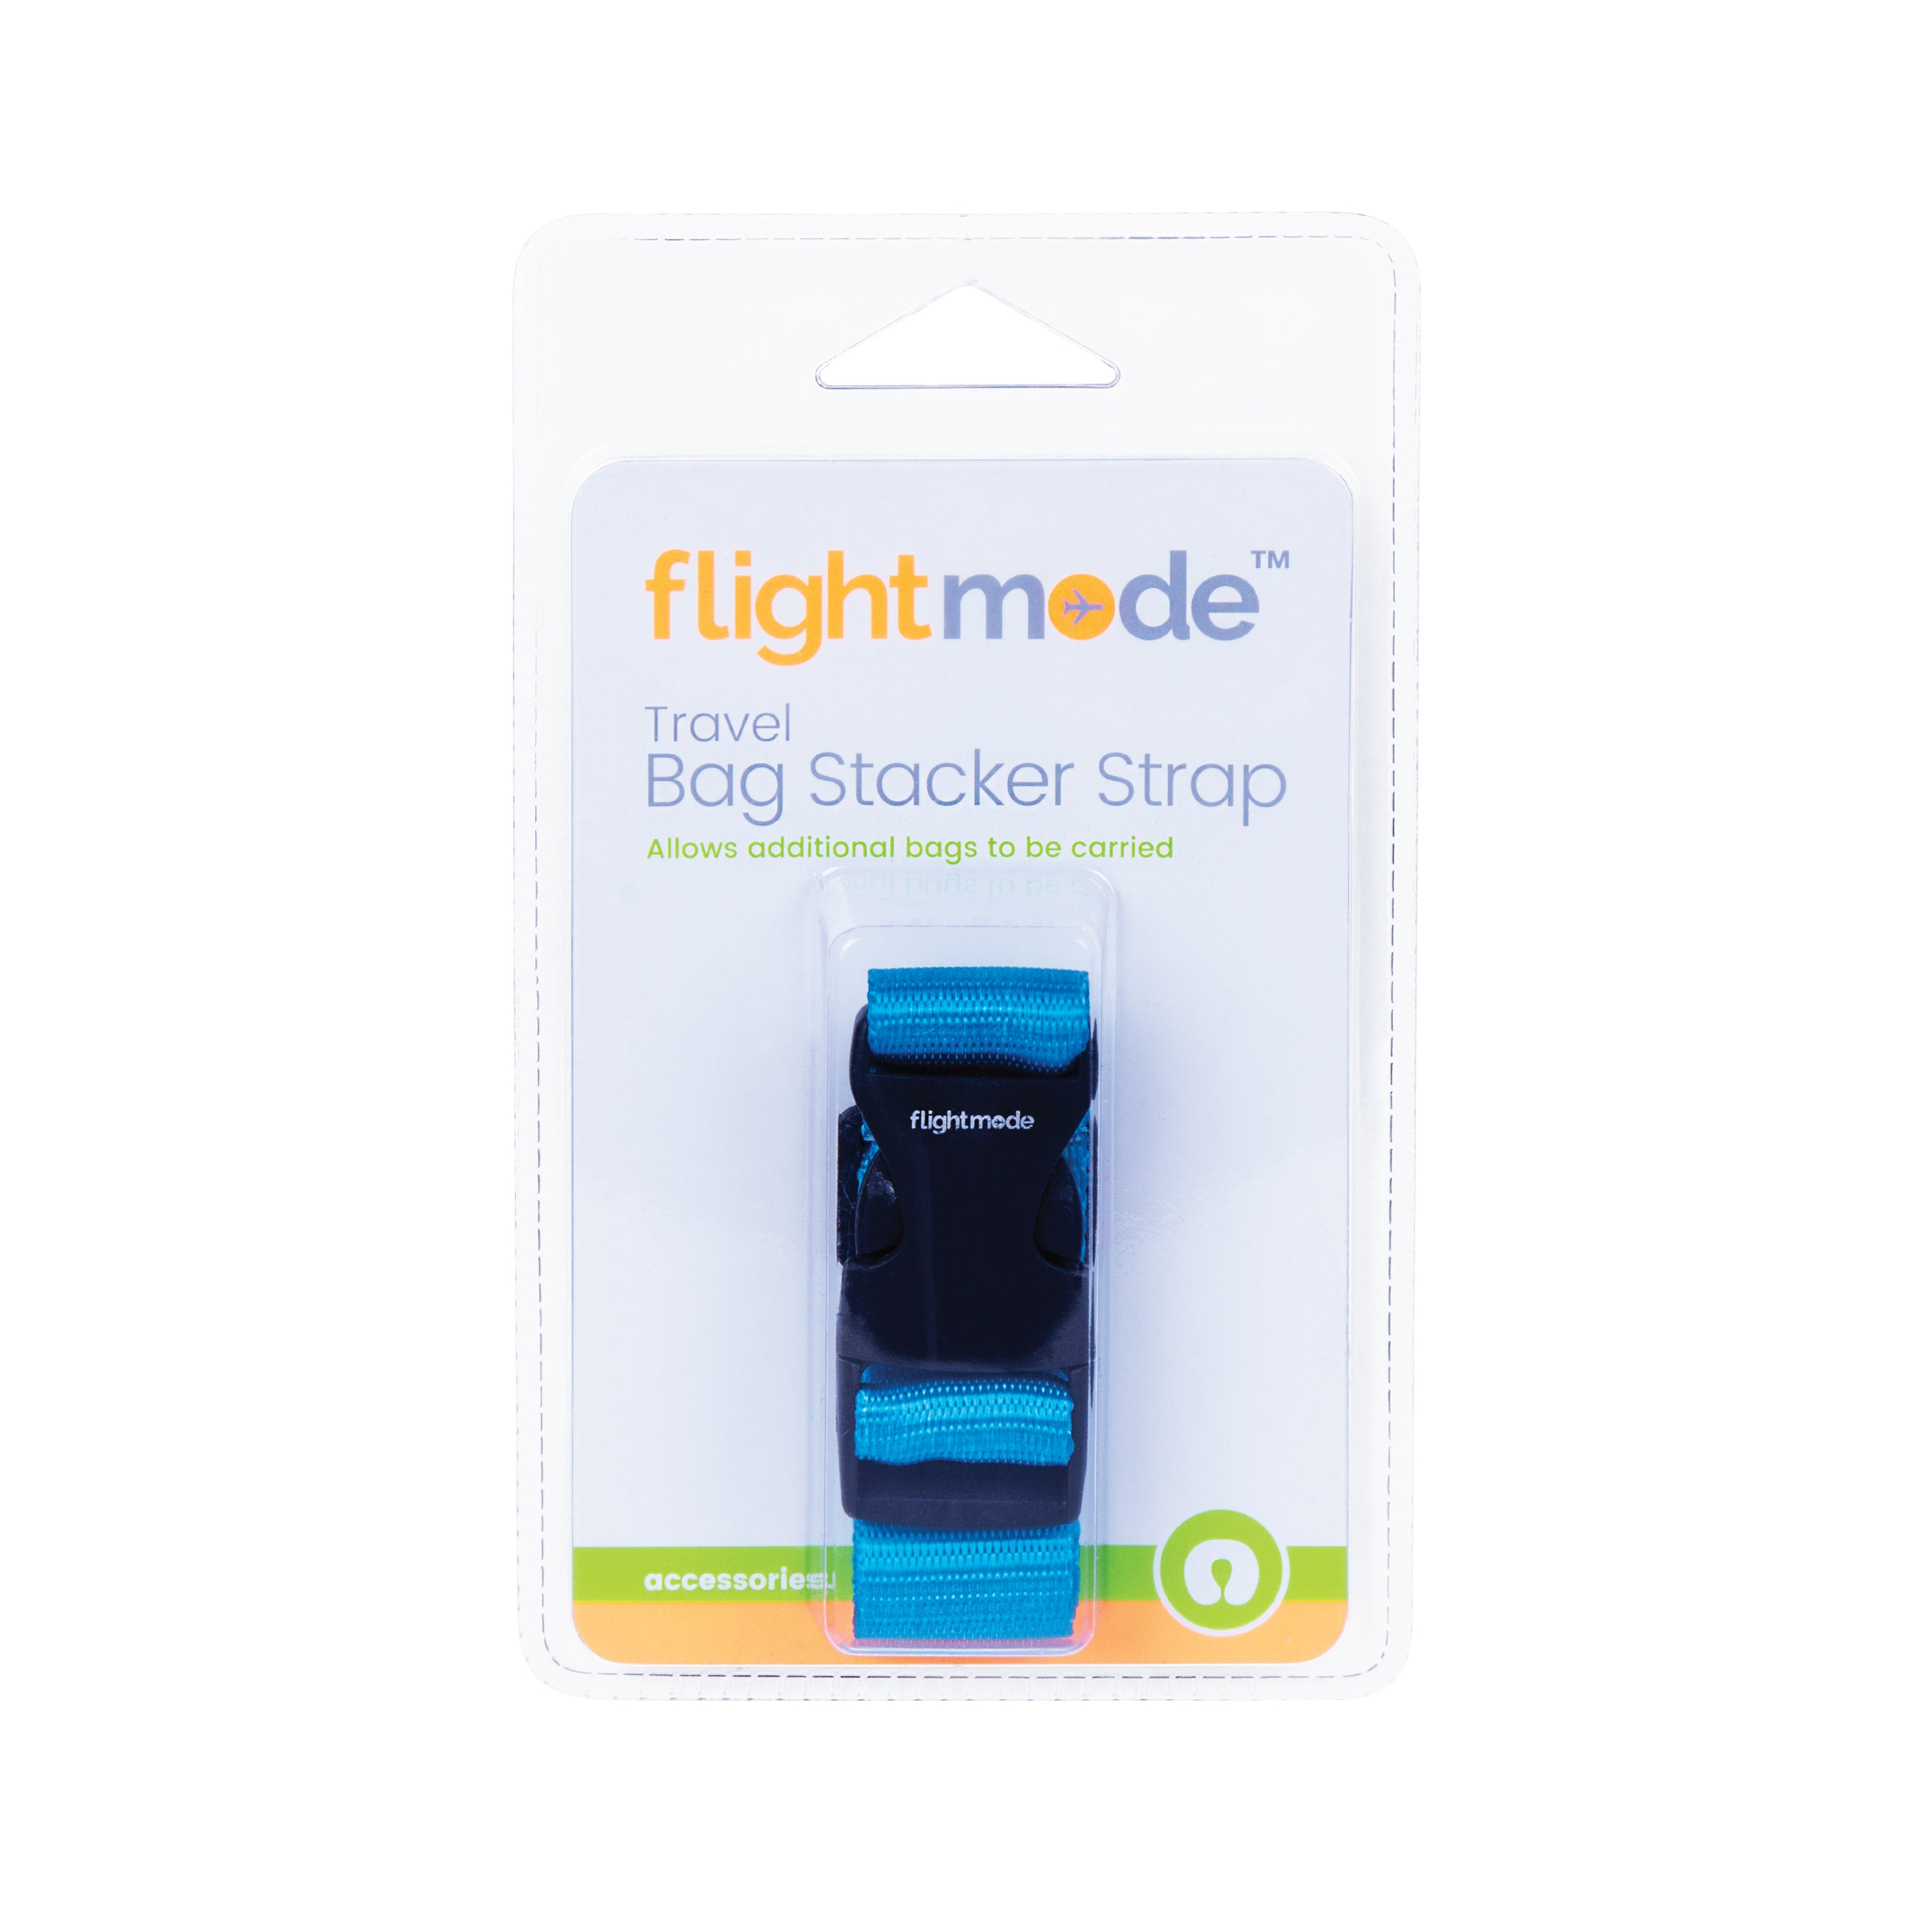 Flightmode Bag Stacker - Strap attachment for luggage Durable quick-release buckle for easy using Dimension: 2.4 x 32 cm - Black Base with Loog Print -3 Assorted Colours - Black, Blue, Orange